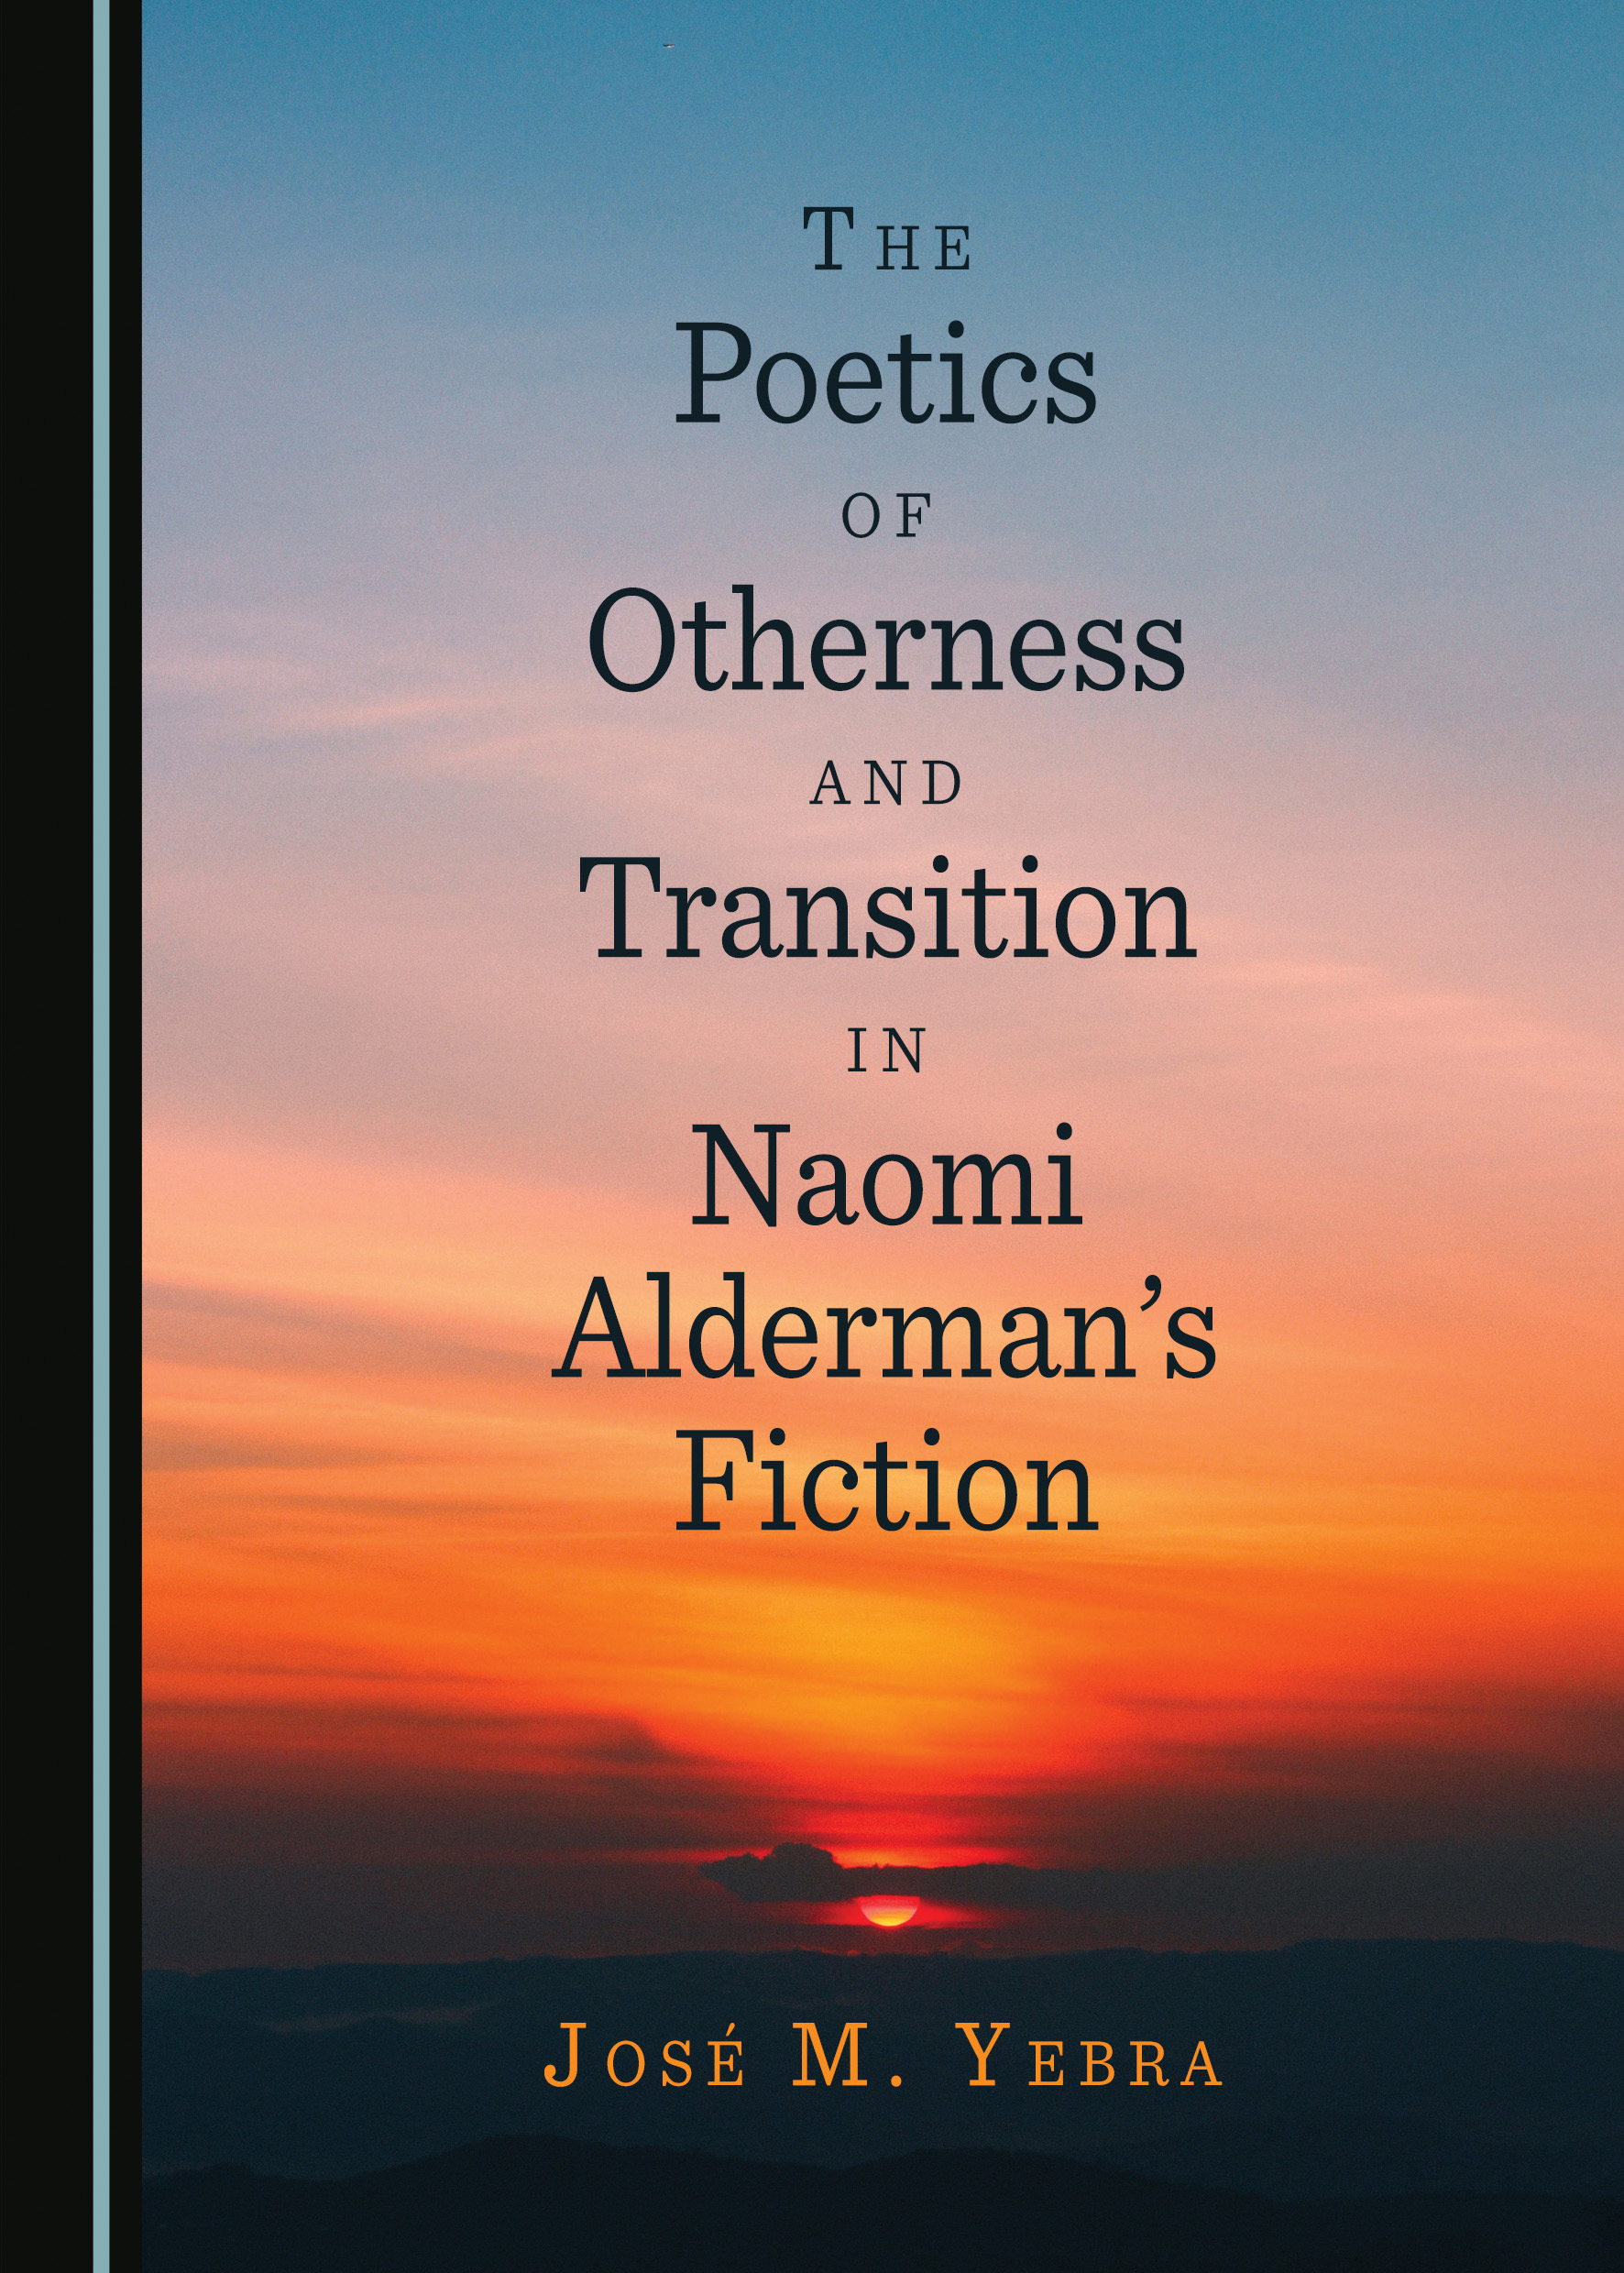 The Poetics of Otherness and Transition in Naomi Alderman's Fiction